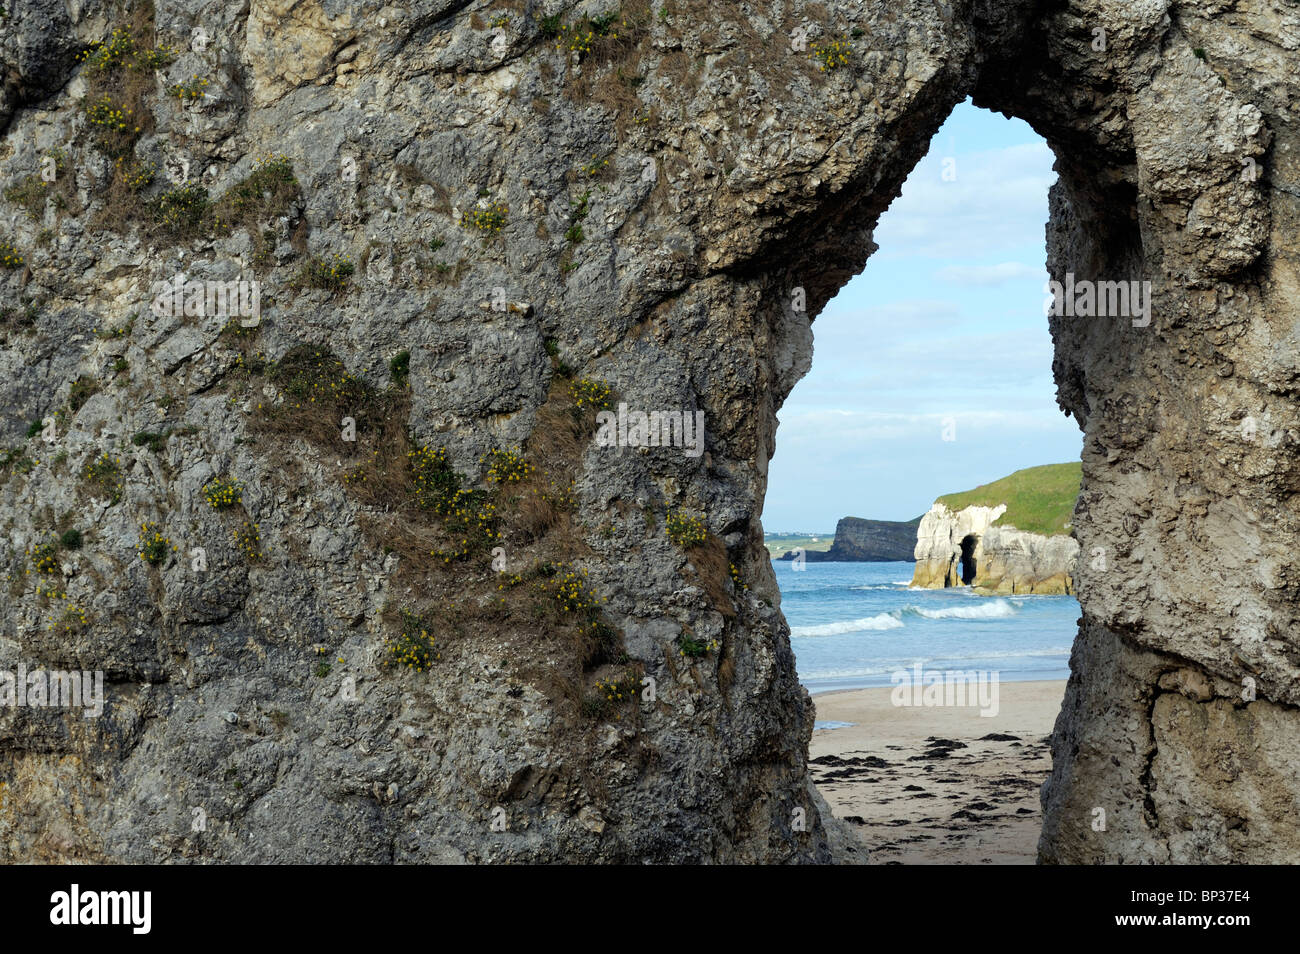 Eroded natural sea arch in limestone cliffs at the White Rocks between Portrush and Bushmills, Northern Ireland - Stock Image